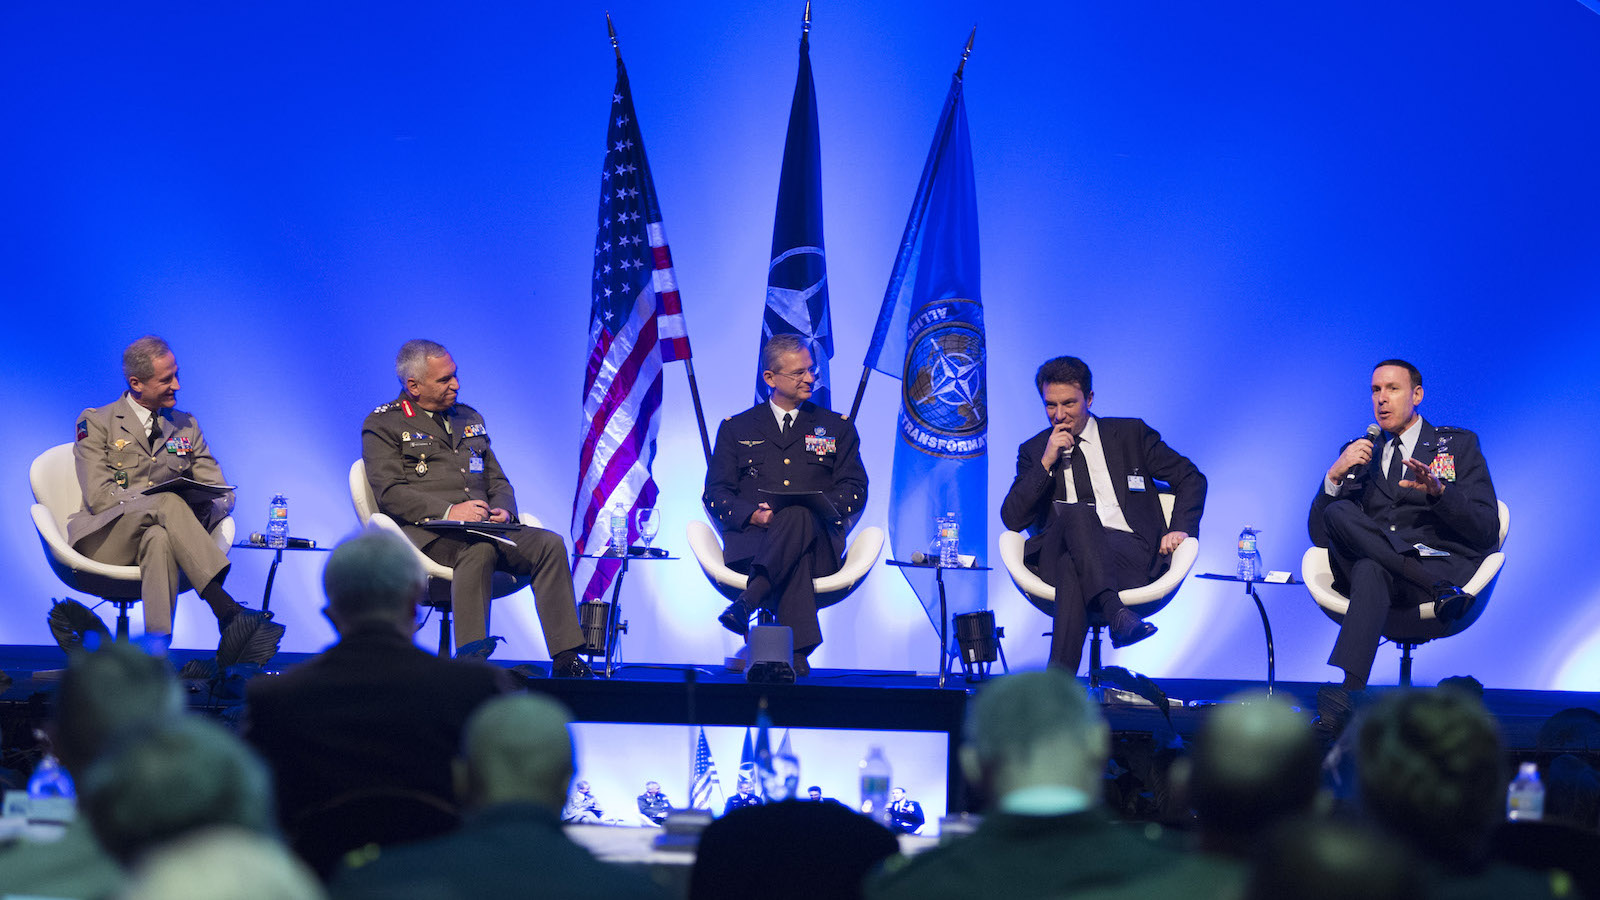 NATO's Chiefs of Transformation Conference